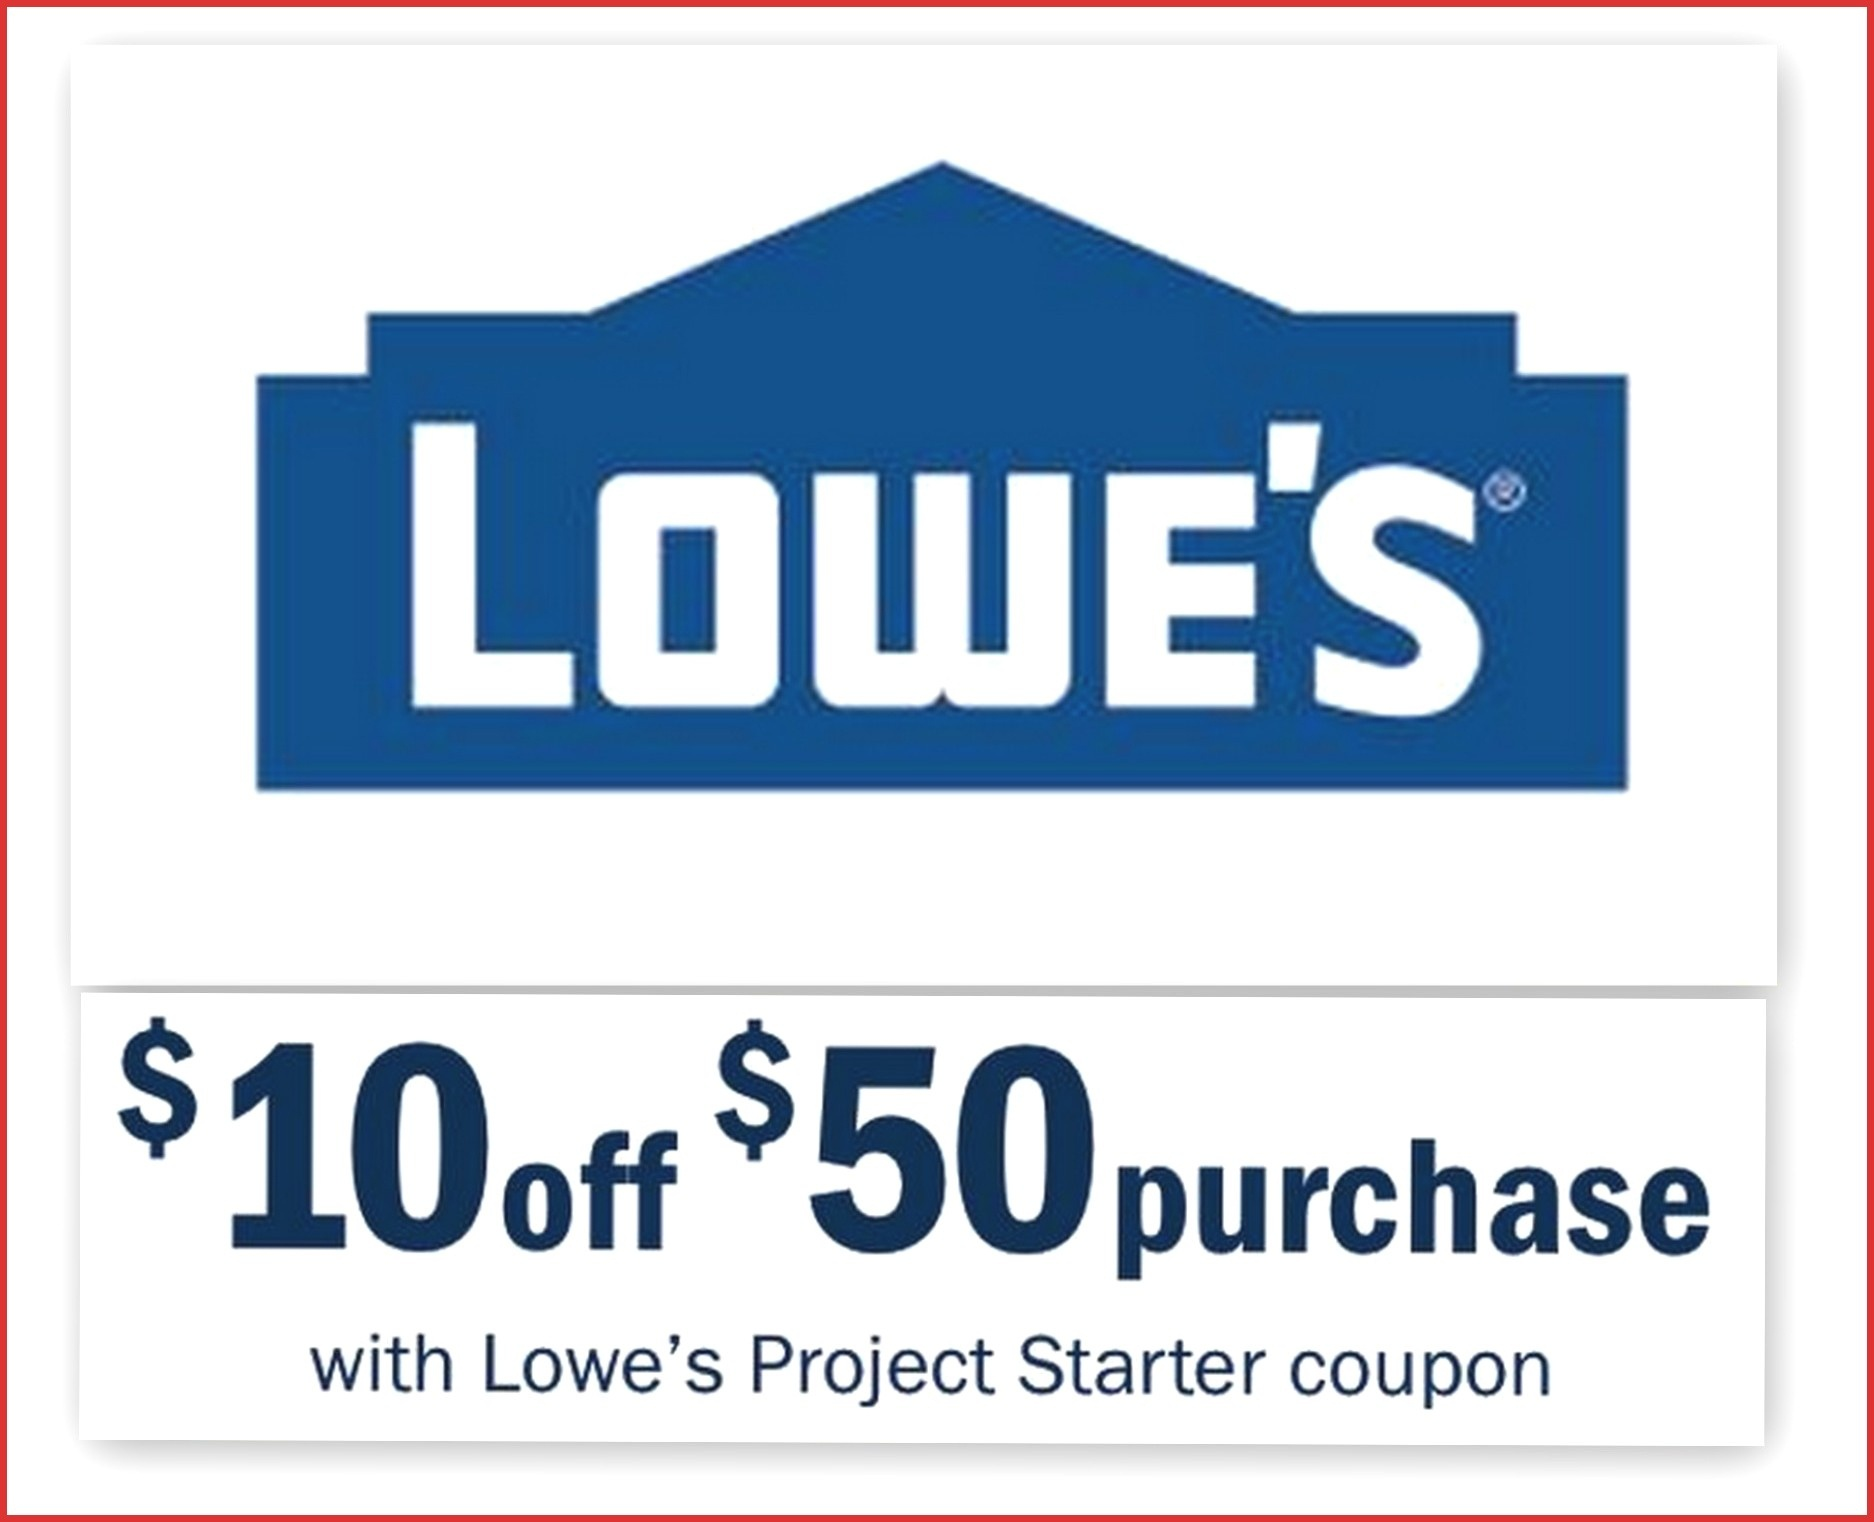 Lovely Lowes Online Coupons   Cobble Usa - Lowes 20 Printable Coupon Free